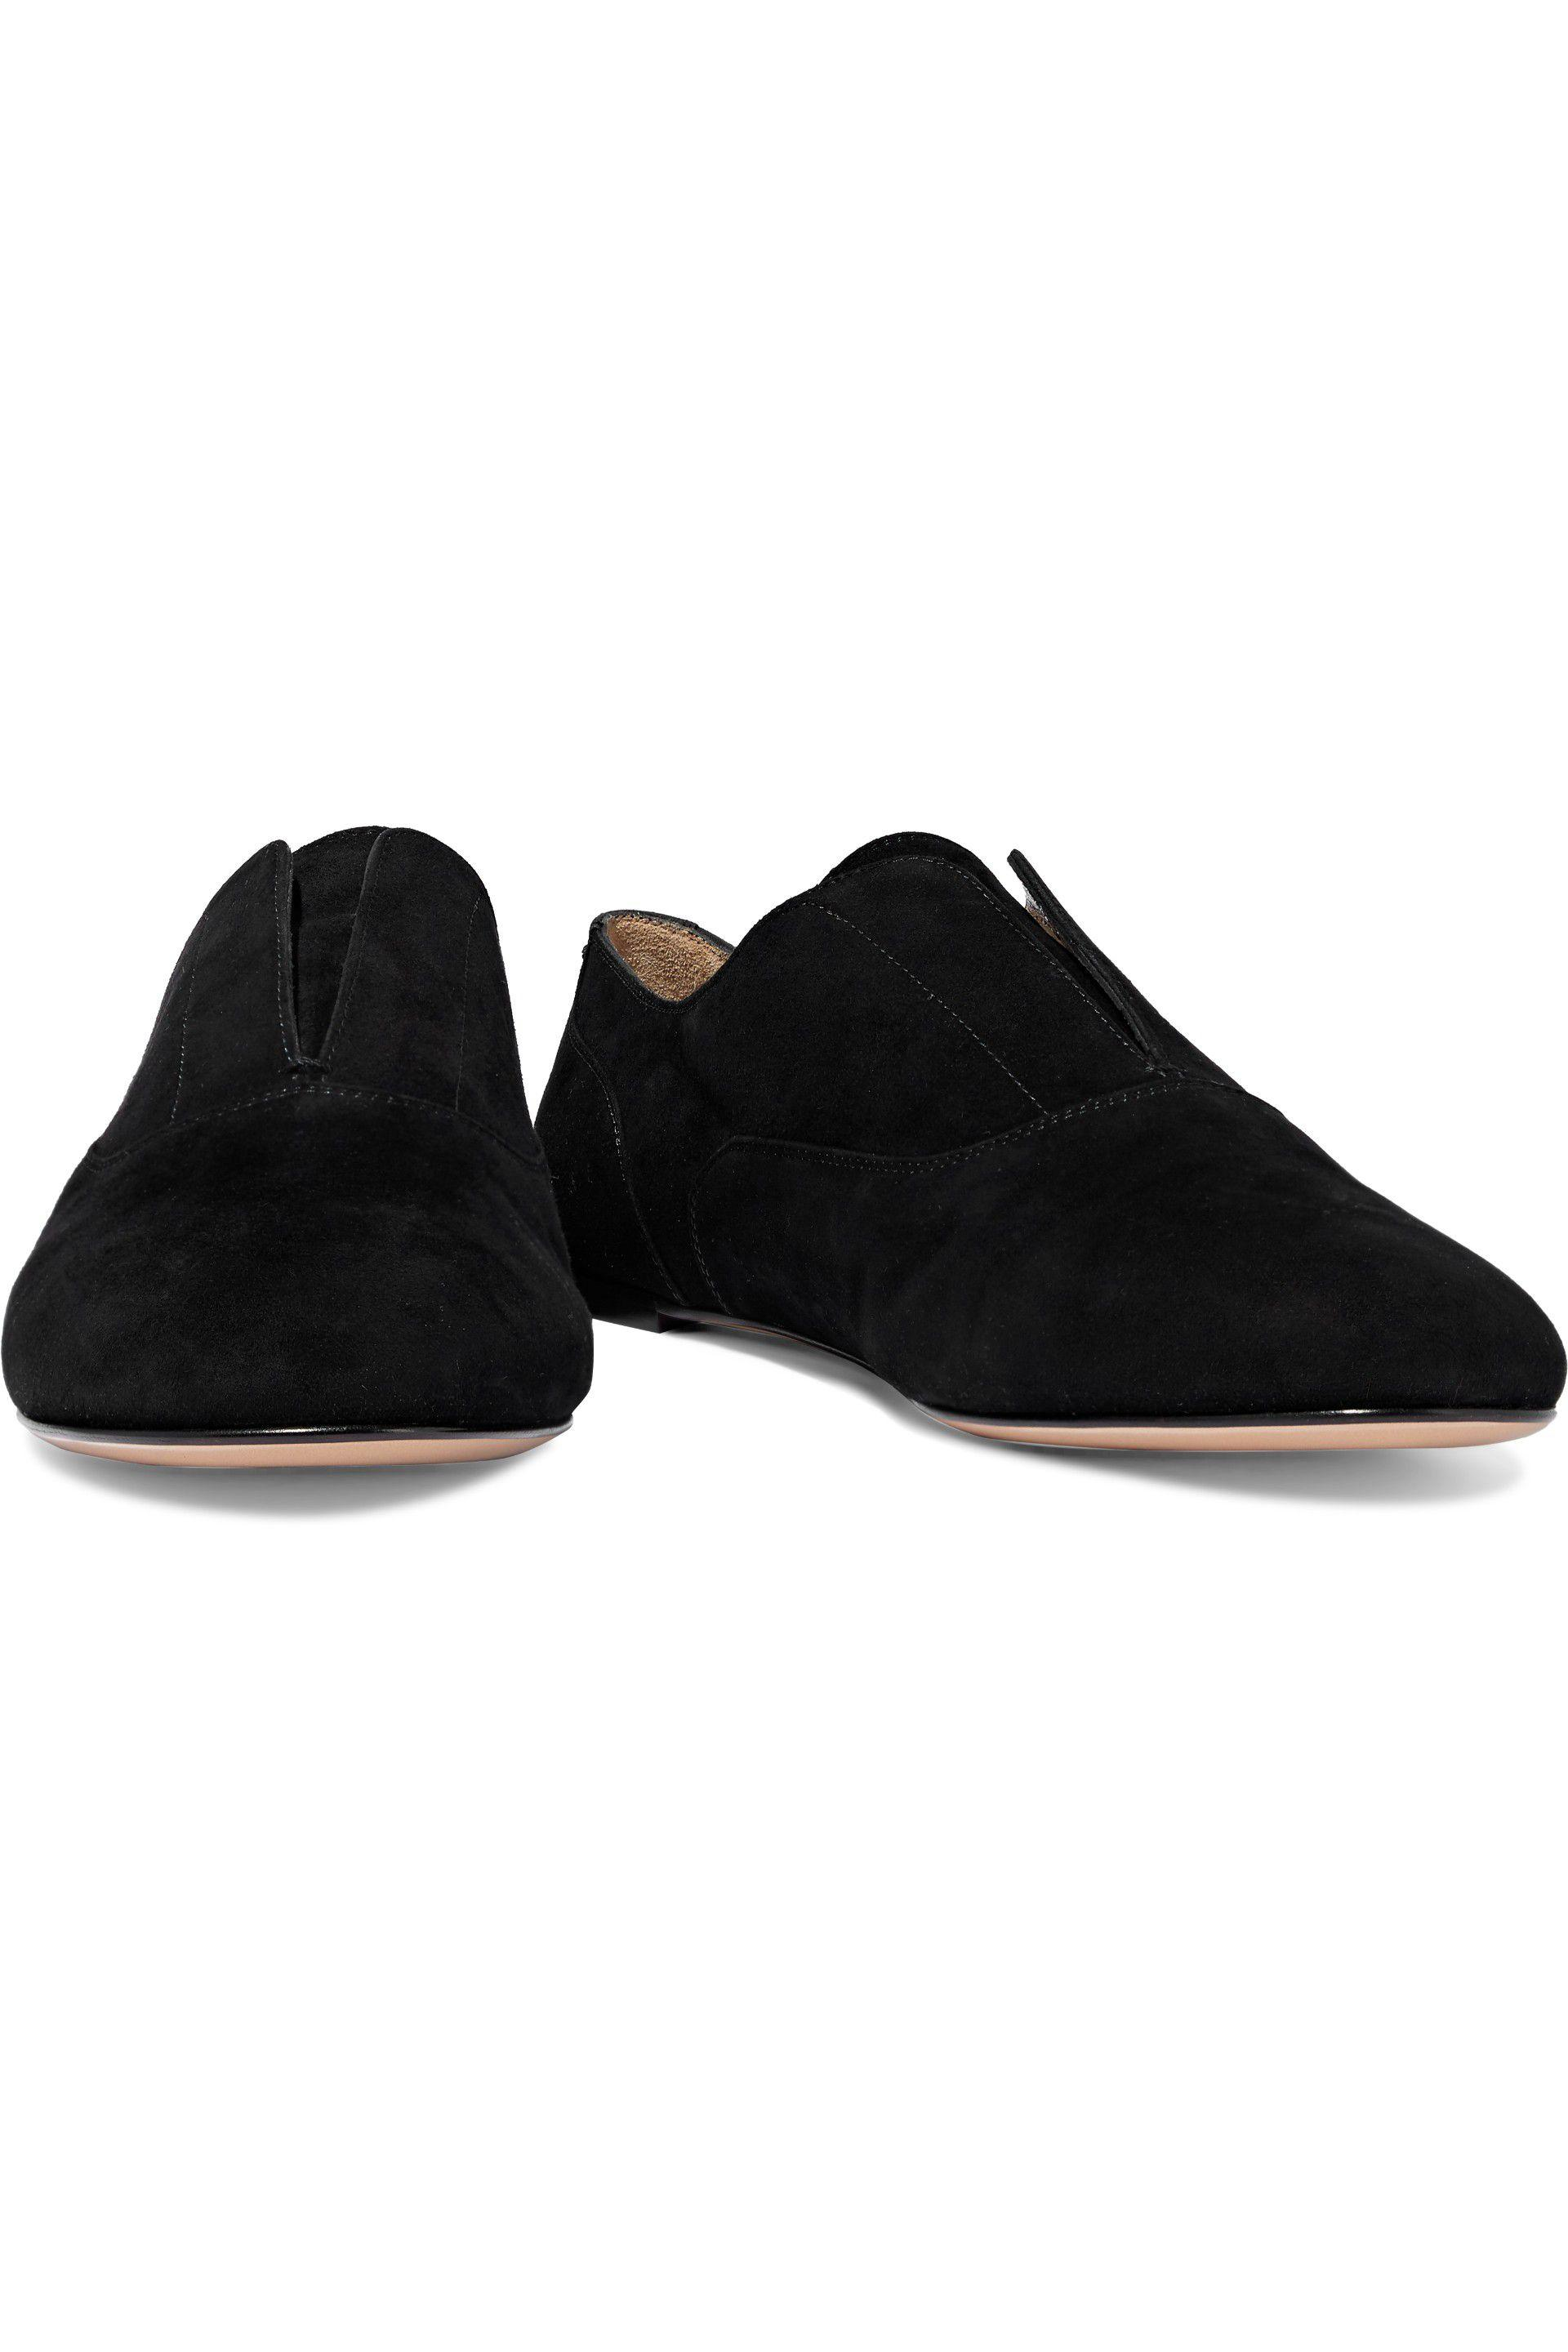 caf5d88f5be Lyst - Gianvito Rossi Woman Camnero Suede Loafers Black in Black